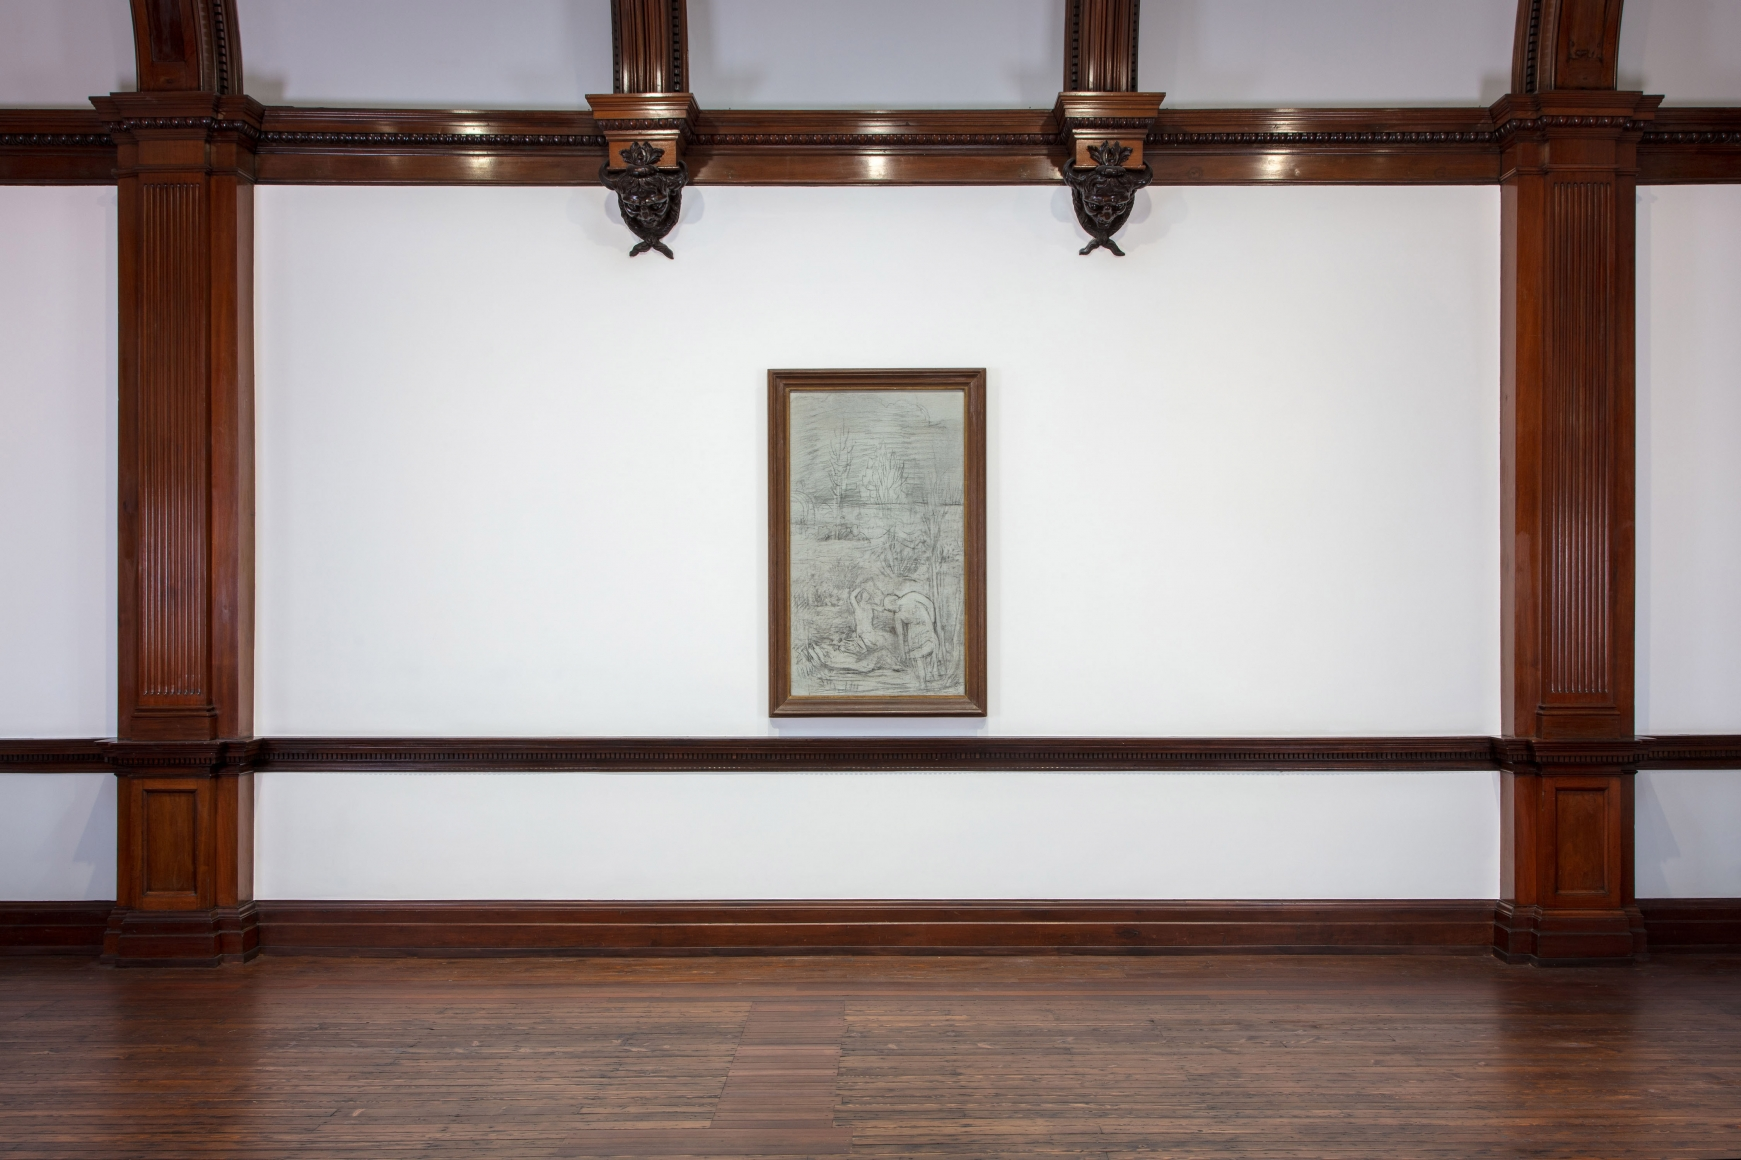 PIERRE PUVIS DE CHAVANNES, Works on Paper and Paintings, London, 2018, Installation Image 13